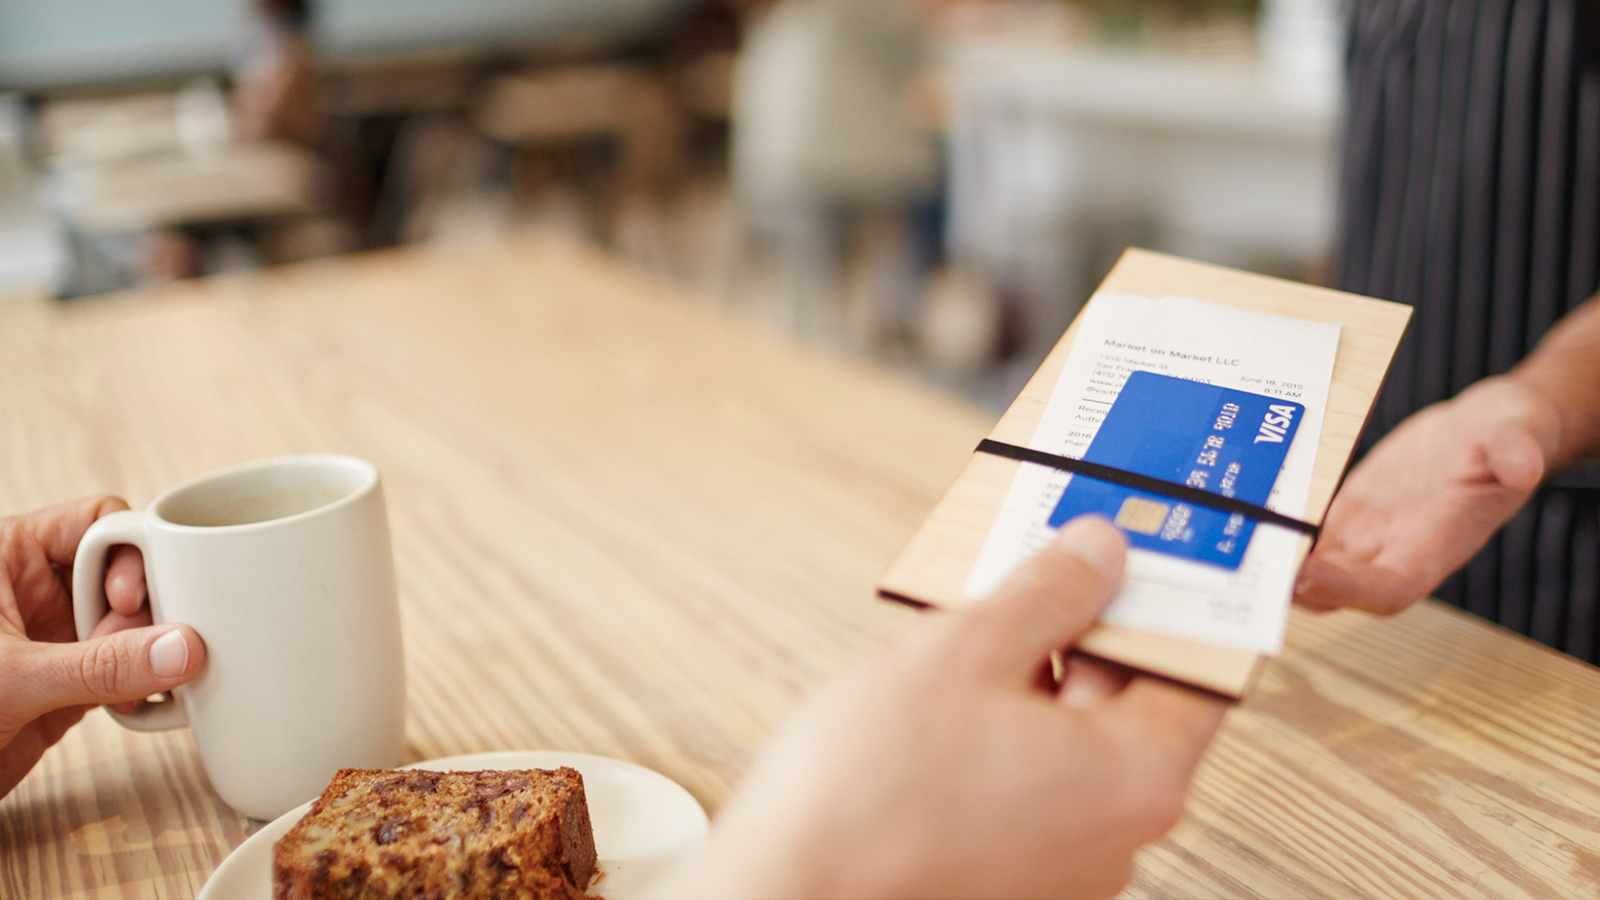 A customer sitting at a table with a mug and pastry handing the waiter the check with a Visa card.